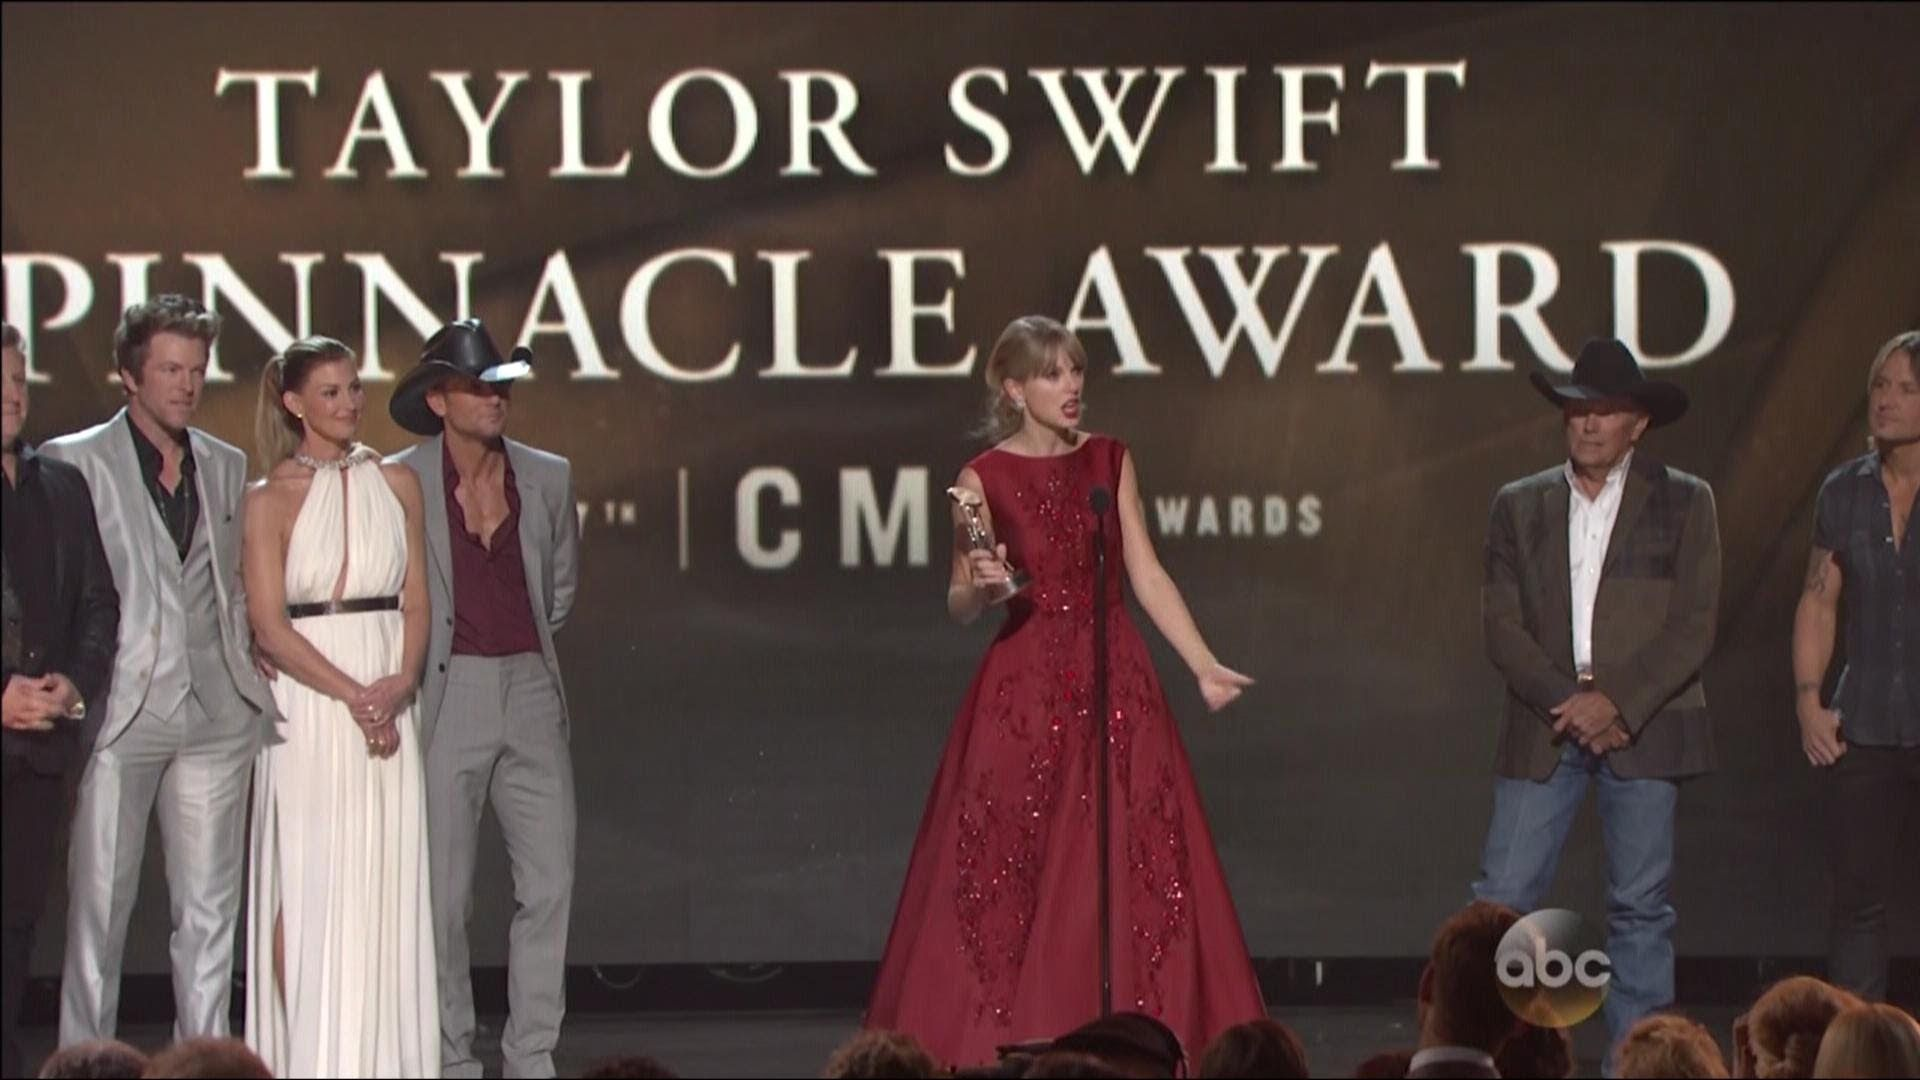 Taylor Swift receives Pinnacle Award at 47th Annual CMA Awards - 11/6/20... No matter how much i watch this i never get tired of it and her cuteness xx